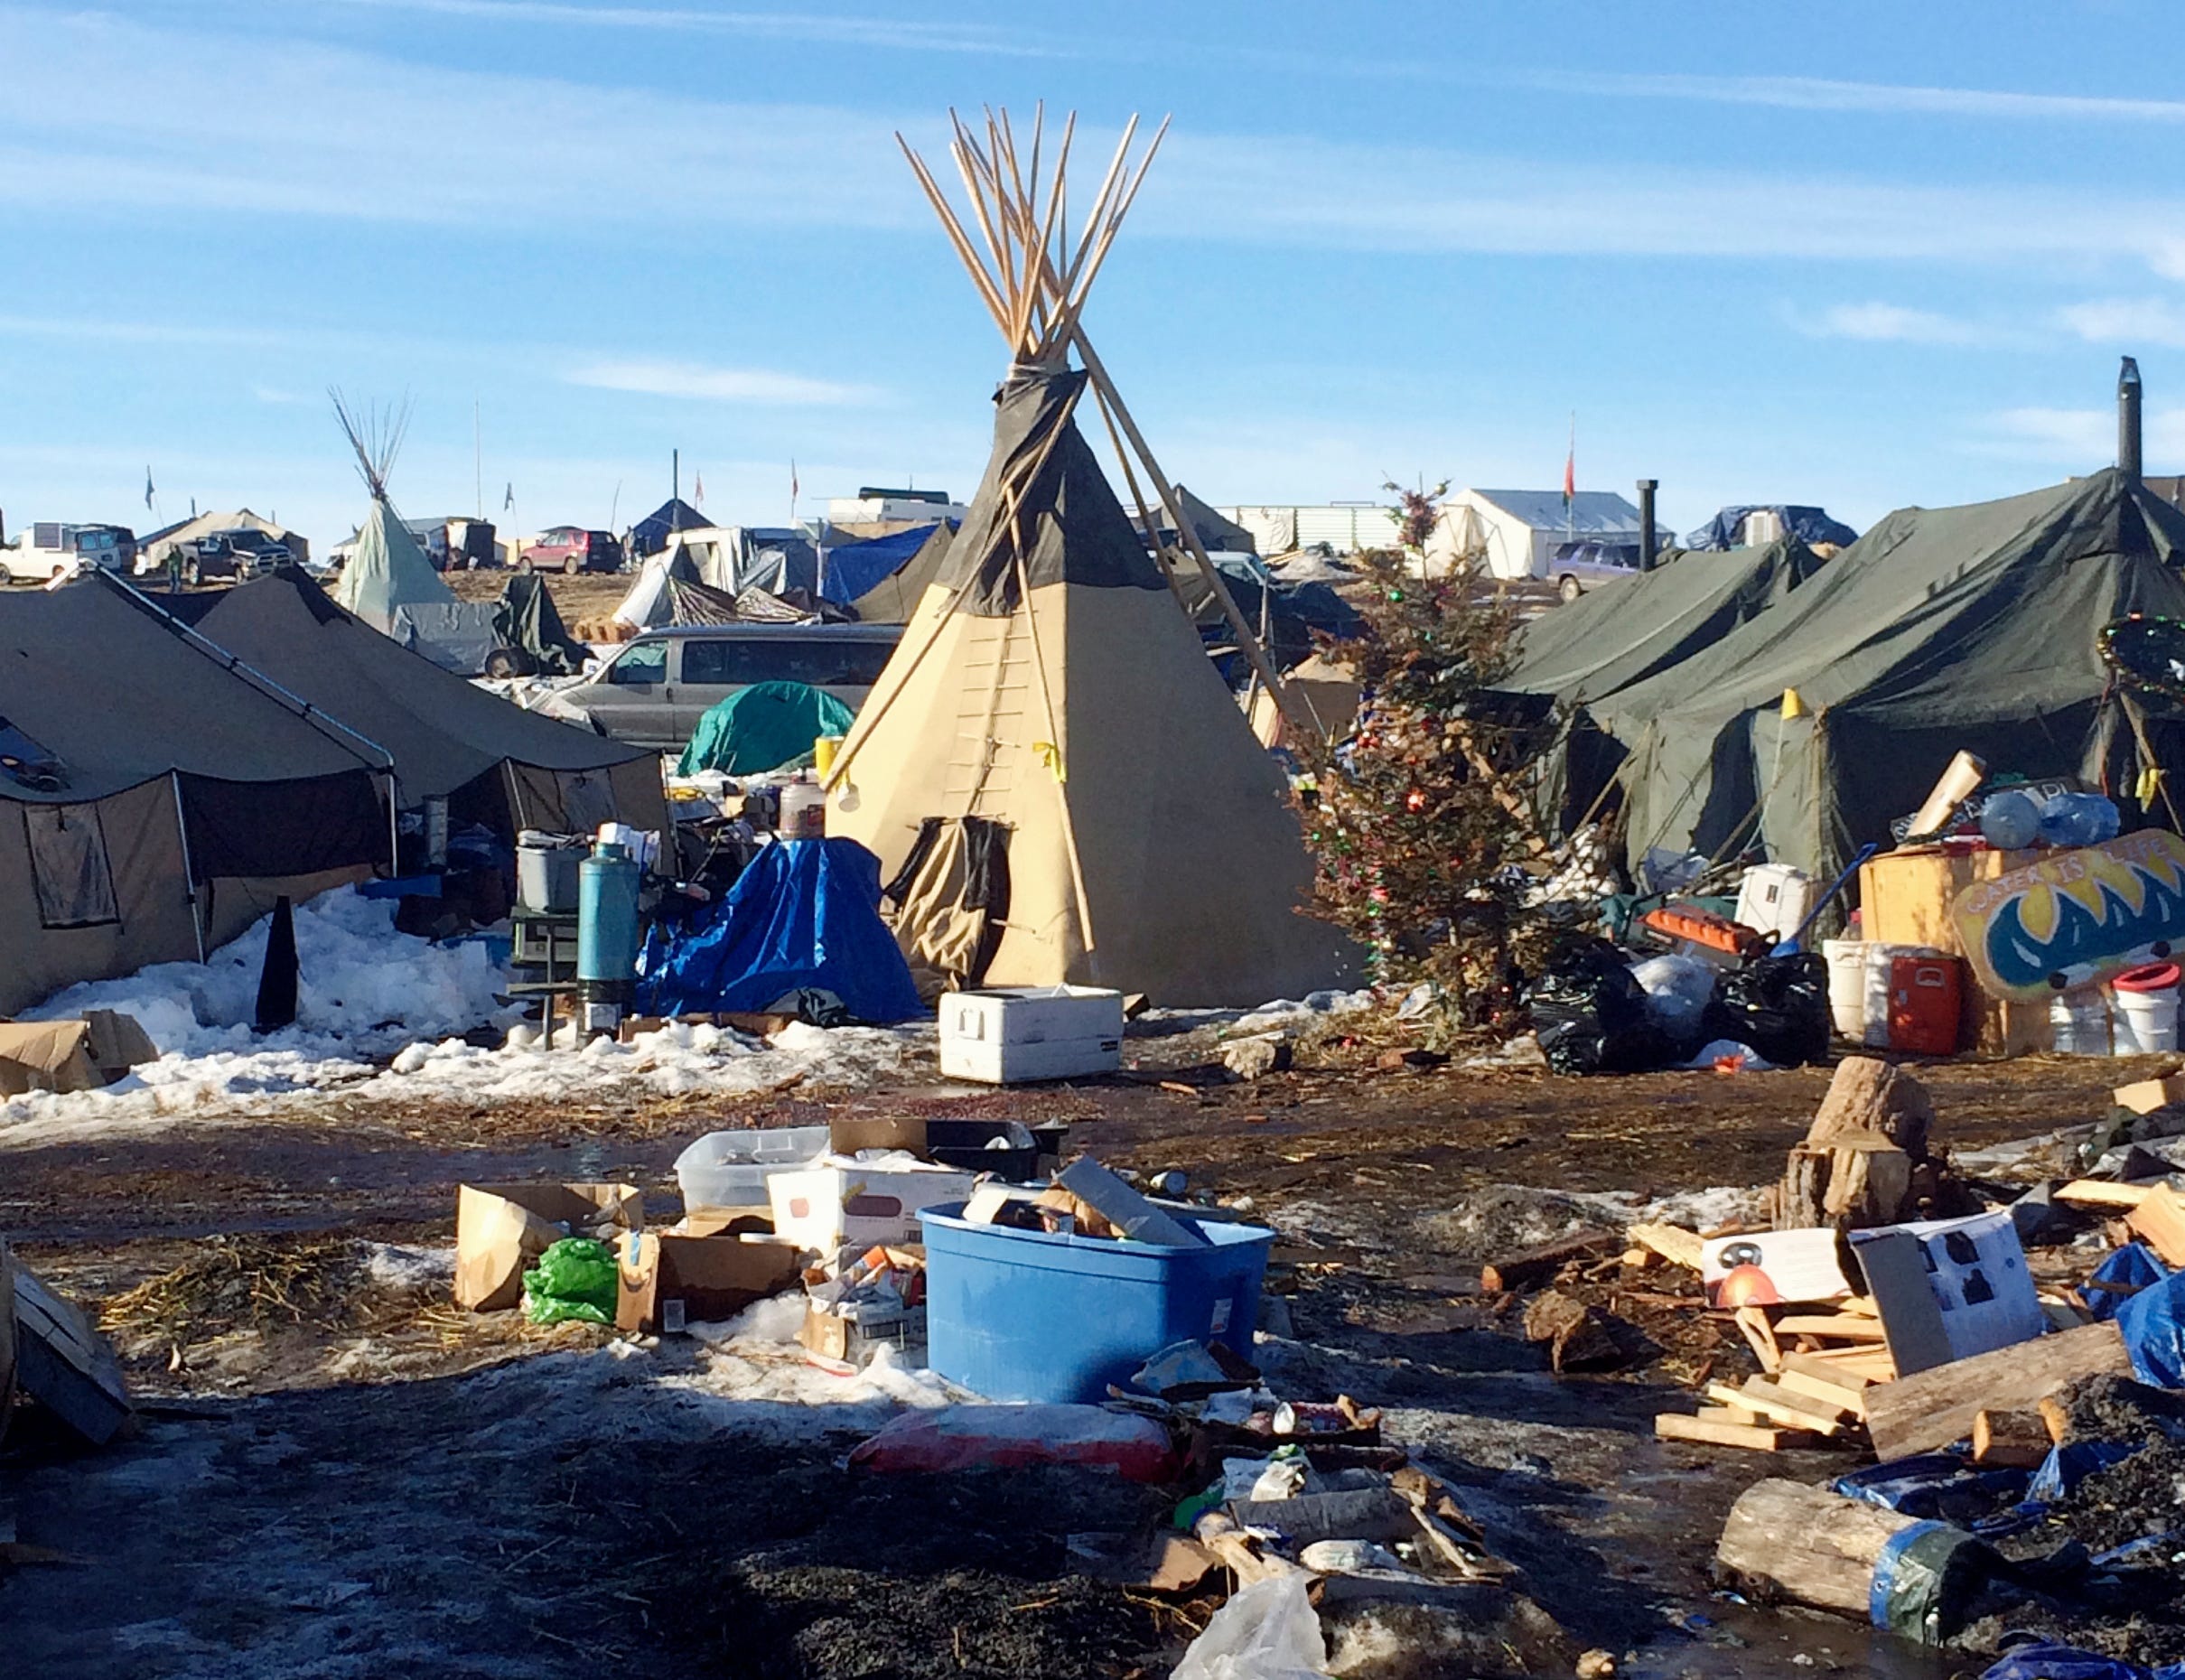 Deadline extension to leave Dakota Access oil pipeline protest camp not granted